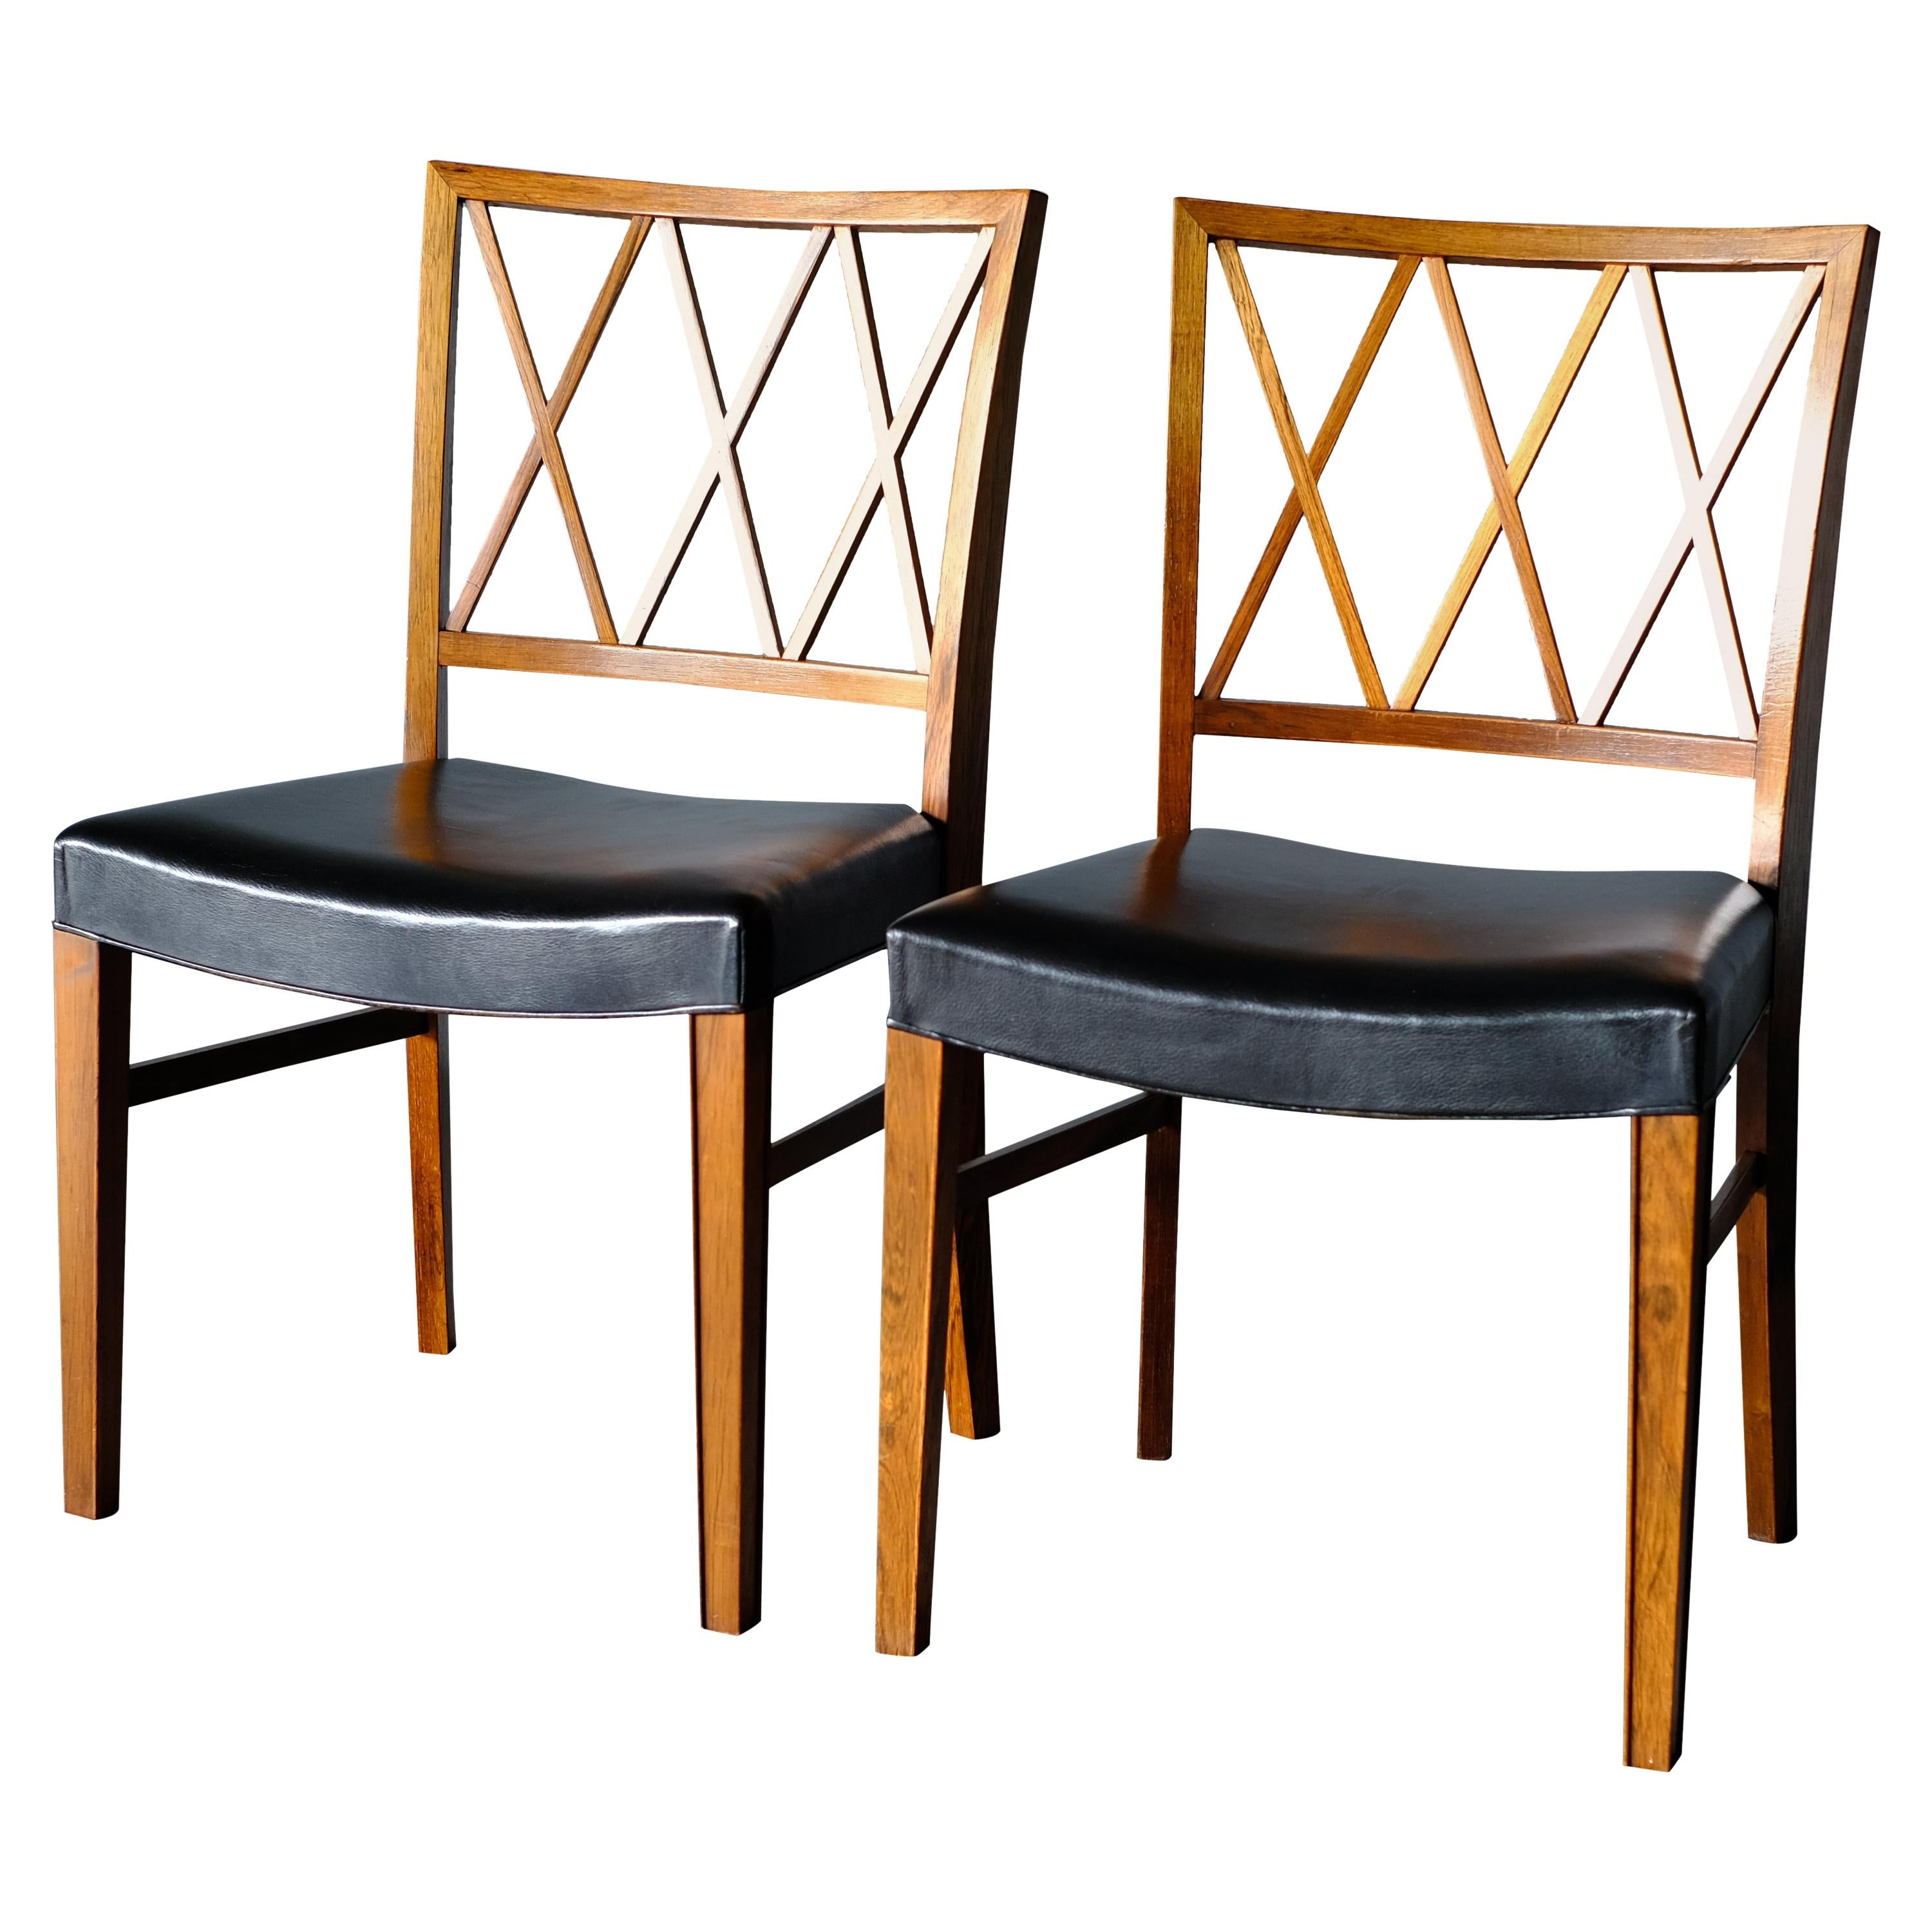 Ole Wanscher, Pair of Chairs, Rosewood